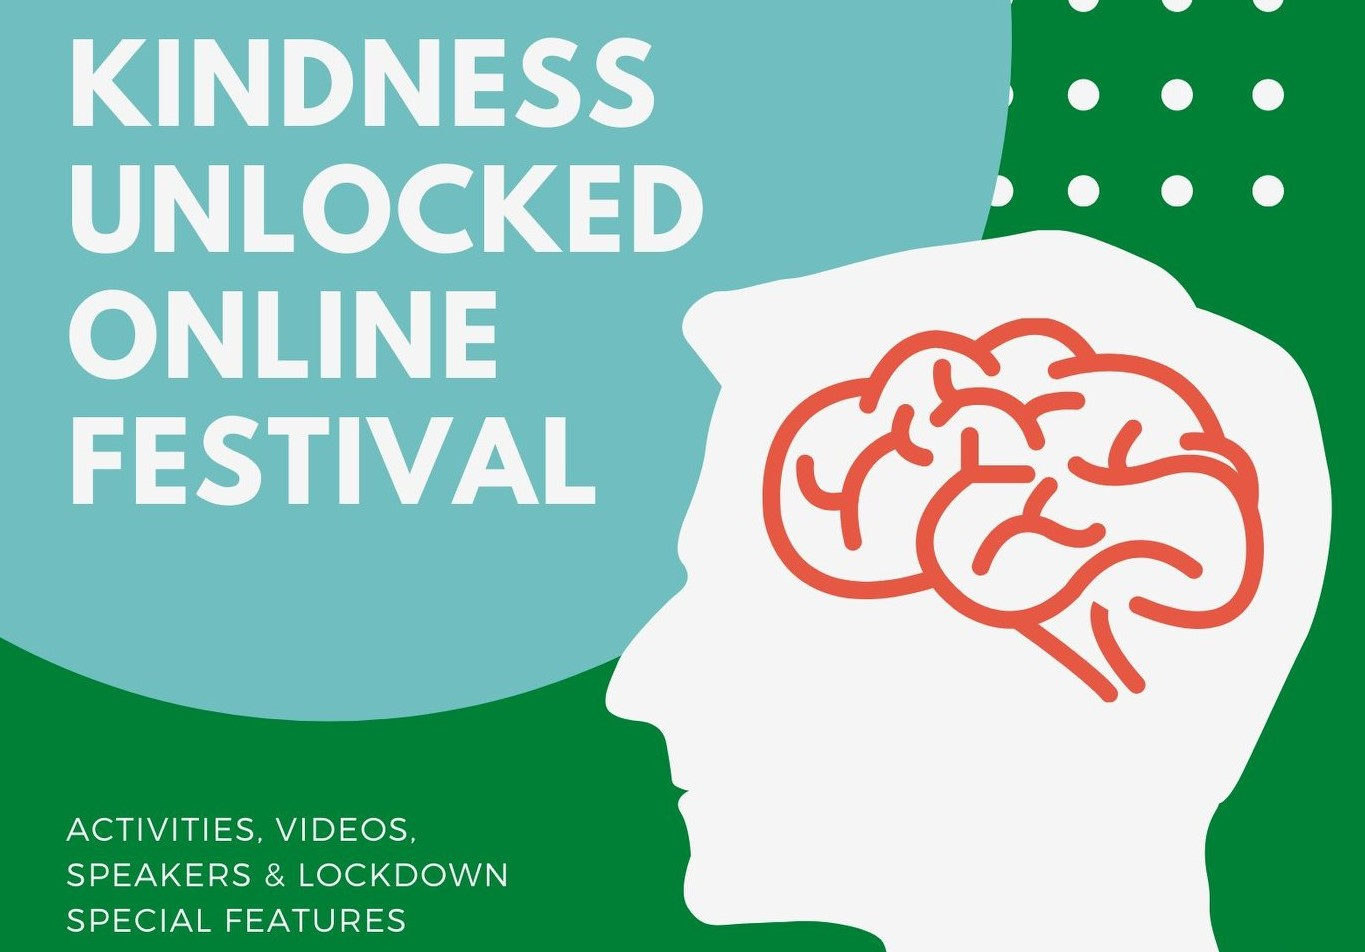 The Kindness Unlocked Online Festival is set to be Aberdeen's largest online mental health and wellbeing event to date